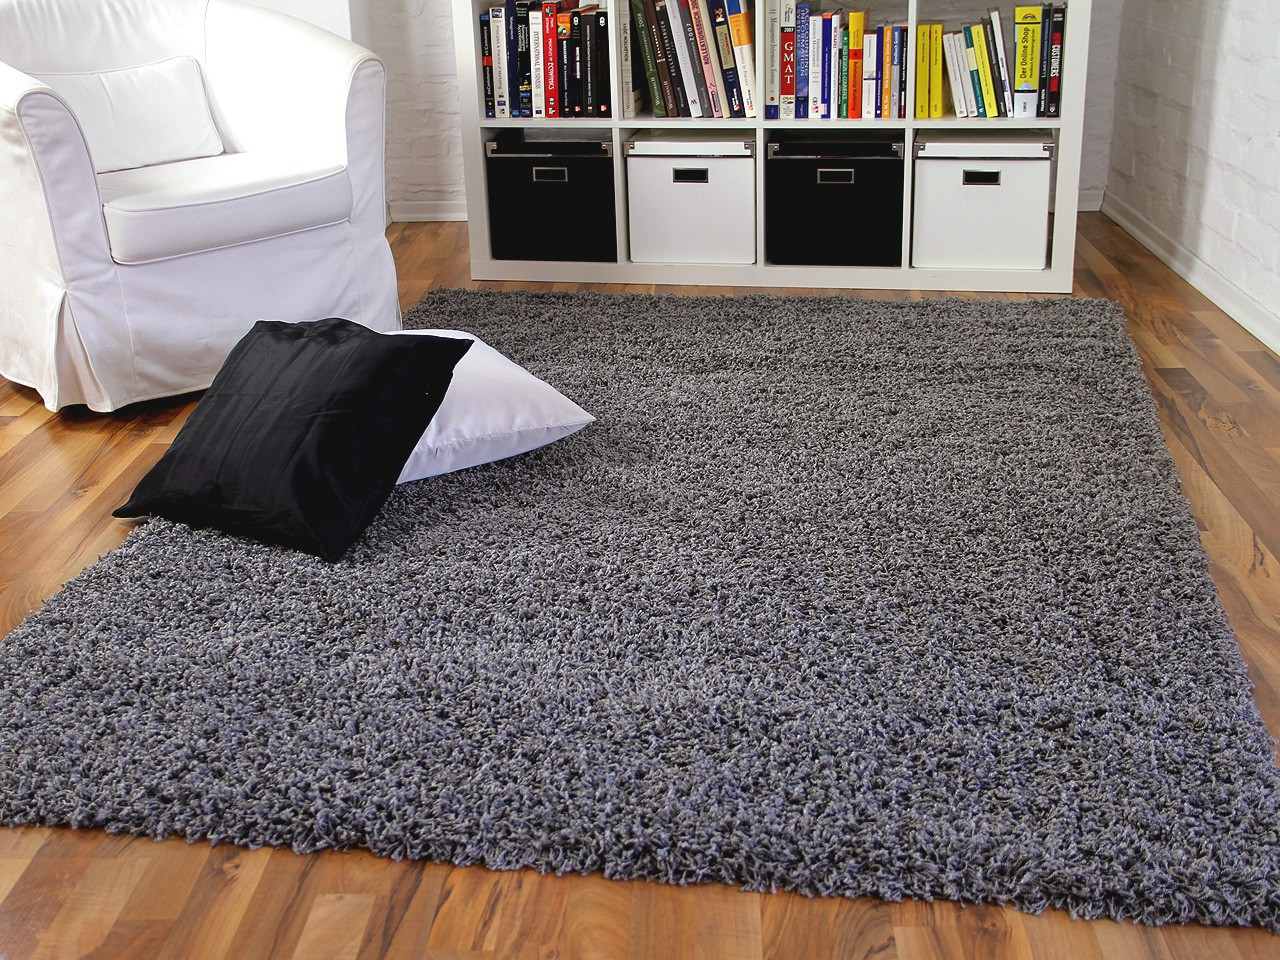 hochflor langflor shaggy teppich aloha anthrazit ebay. Black Bedroom Furniture Sets. Home Design Ideas